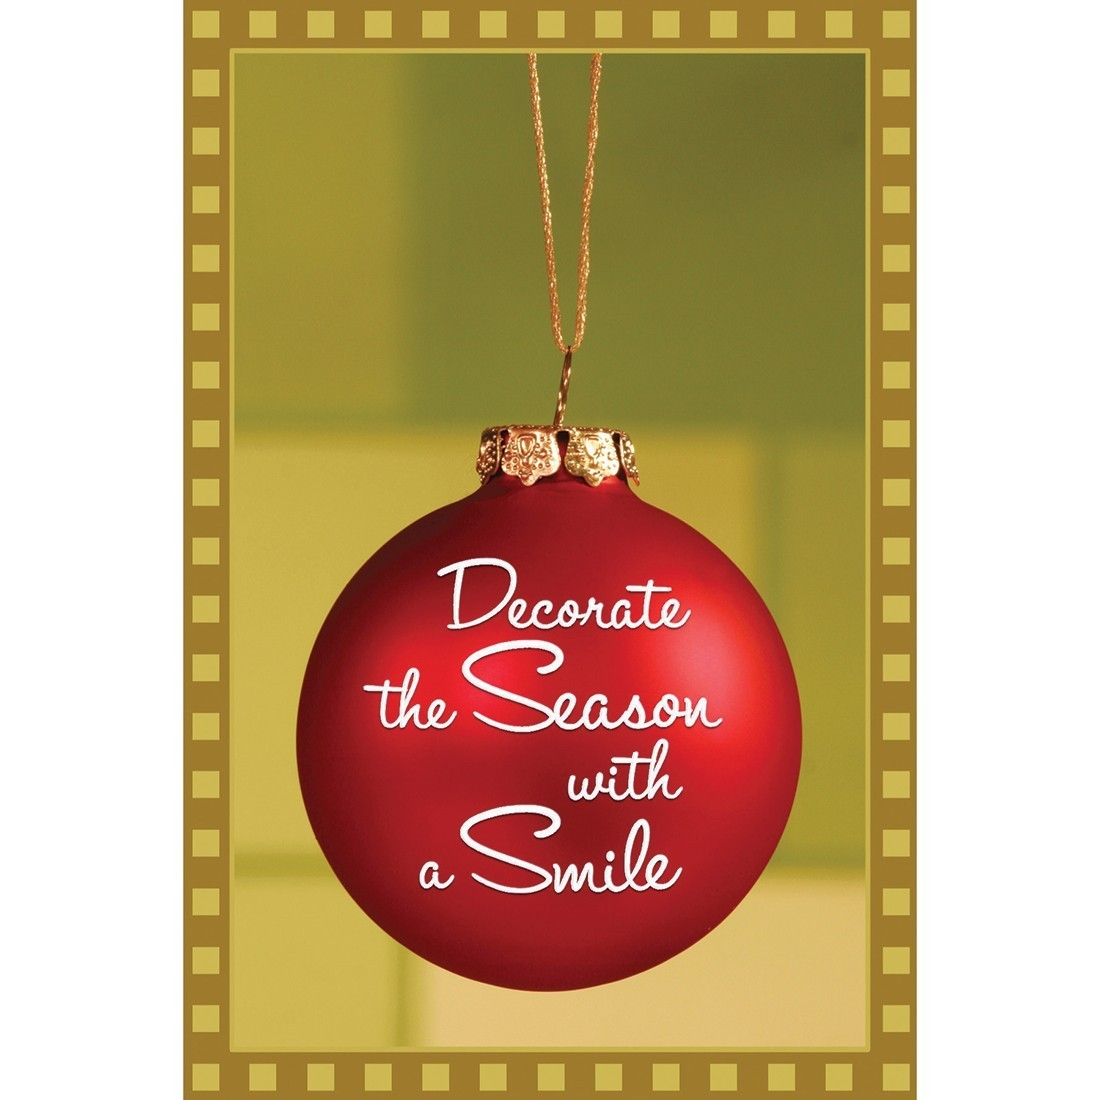 Decorate the Season with a Smile Greeting Cards  [image]